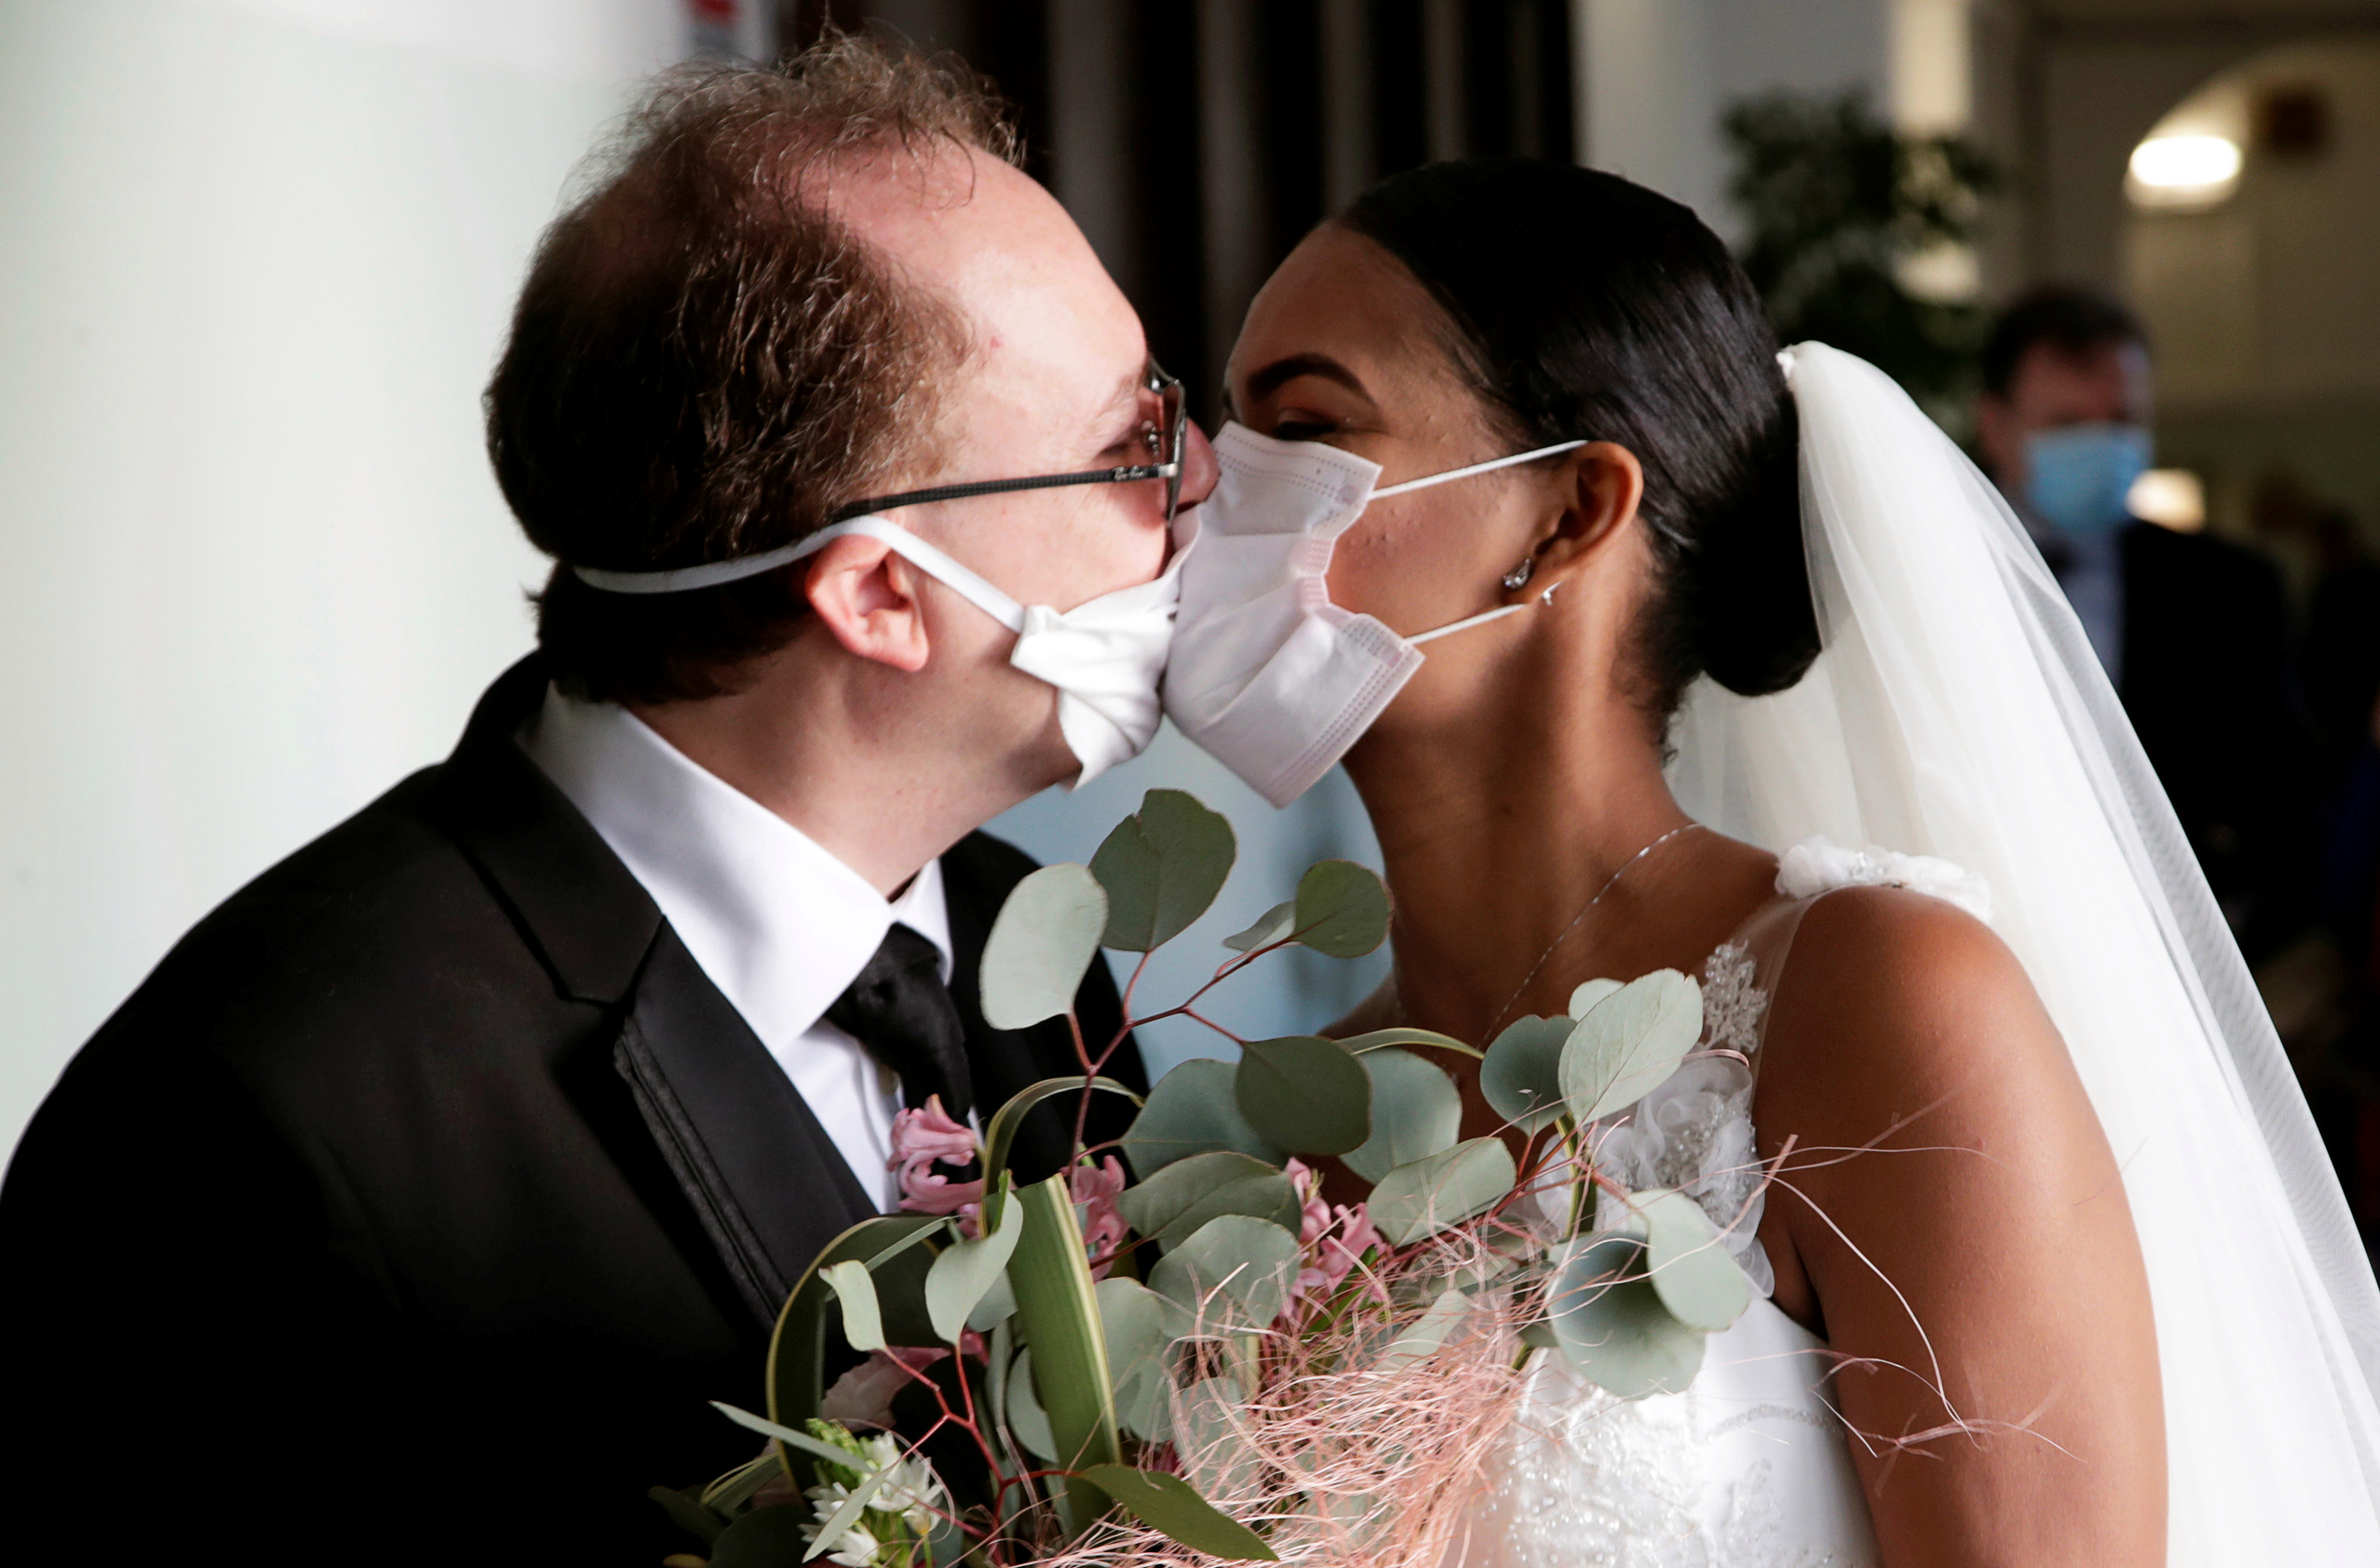 The pair kiss through protective face masks